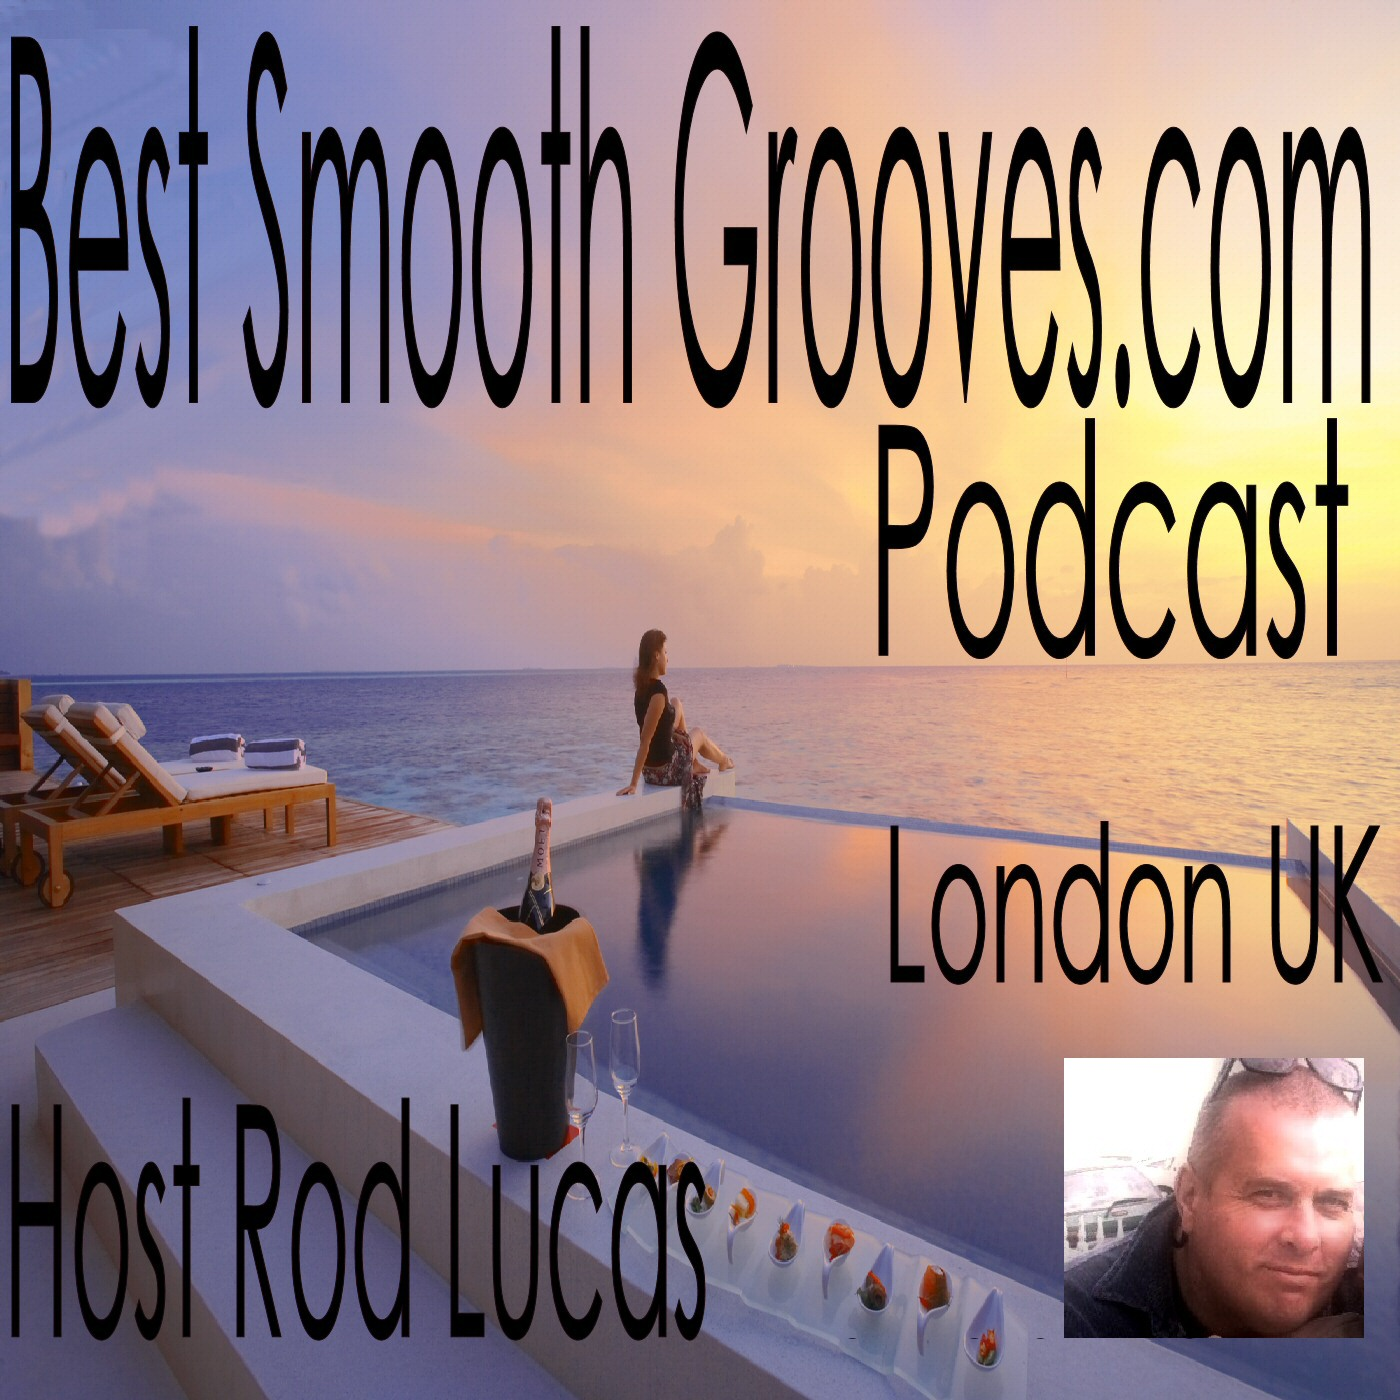 Best Smooth Grooves UK : Host Rod Lucas